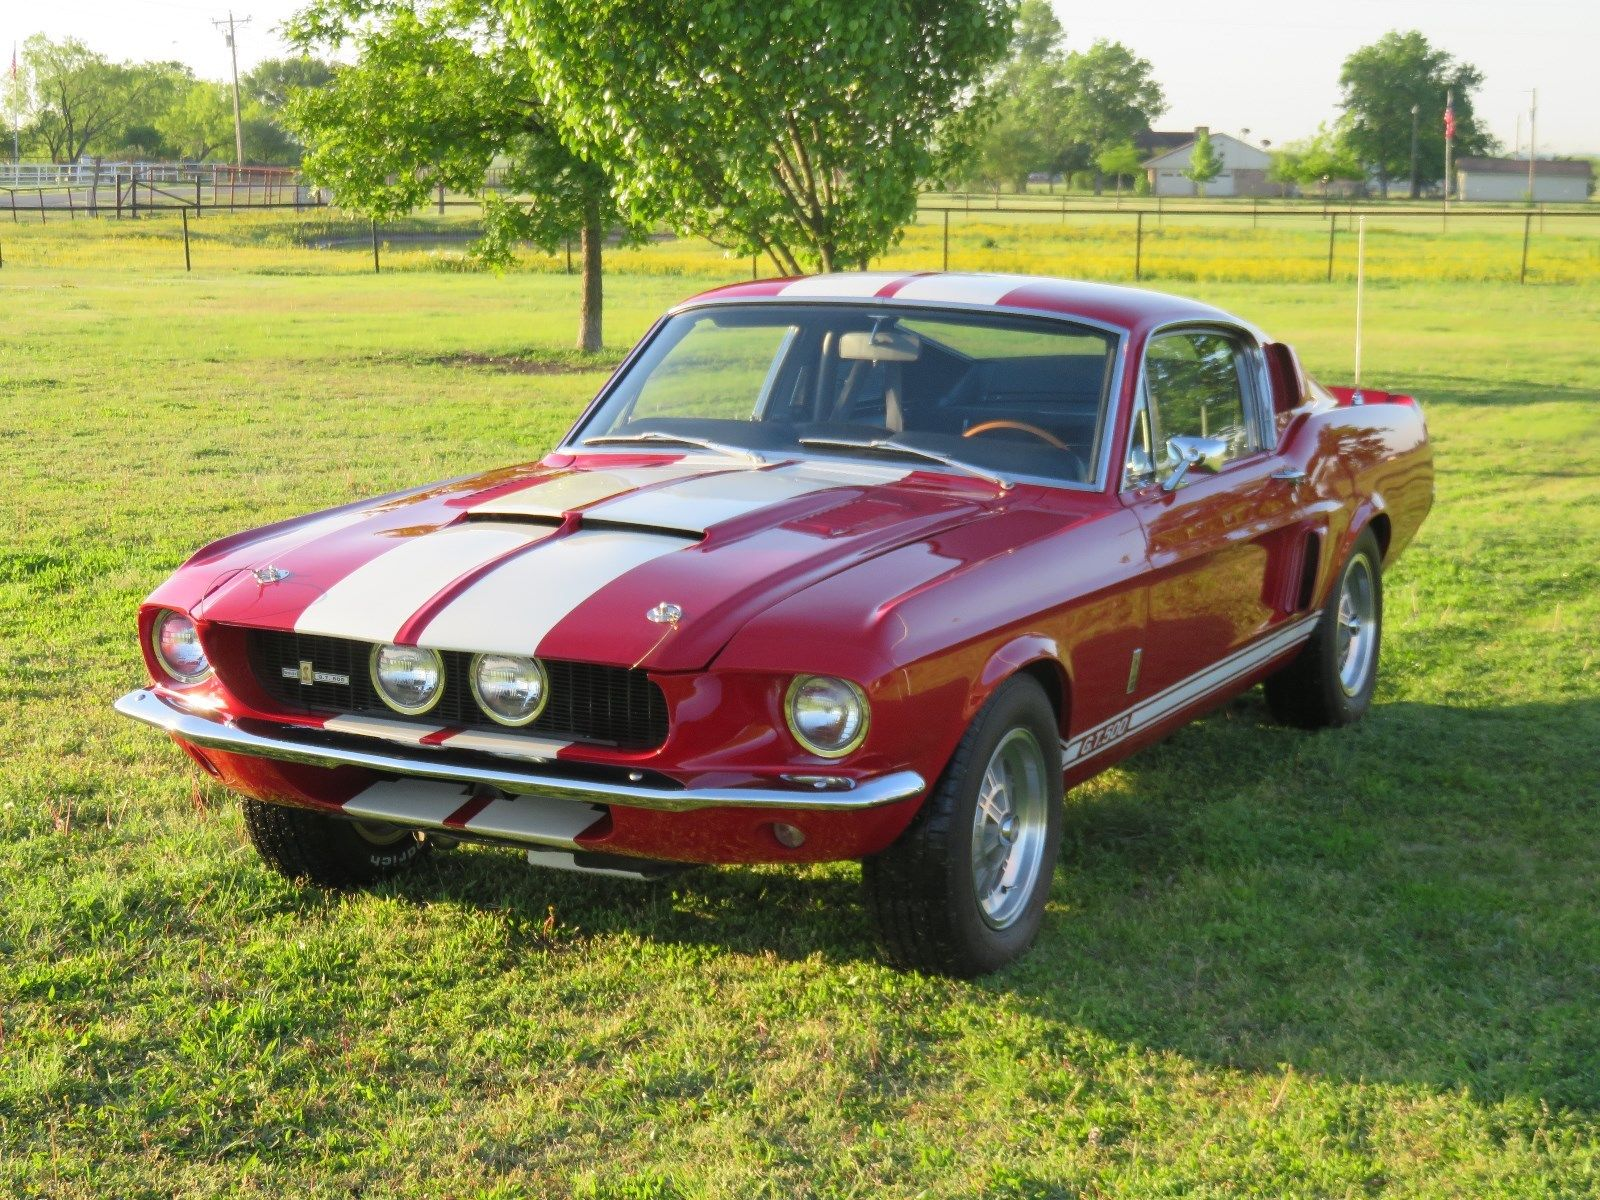 Awesome 1967 ford mustang shelby gt 500 1967 shelby gt500 museum quality 2018 2019